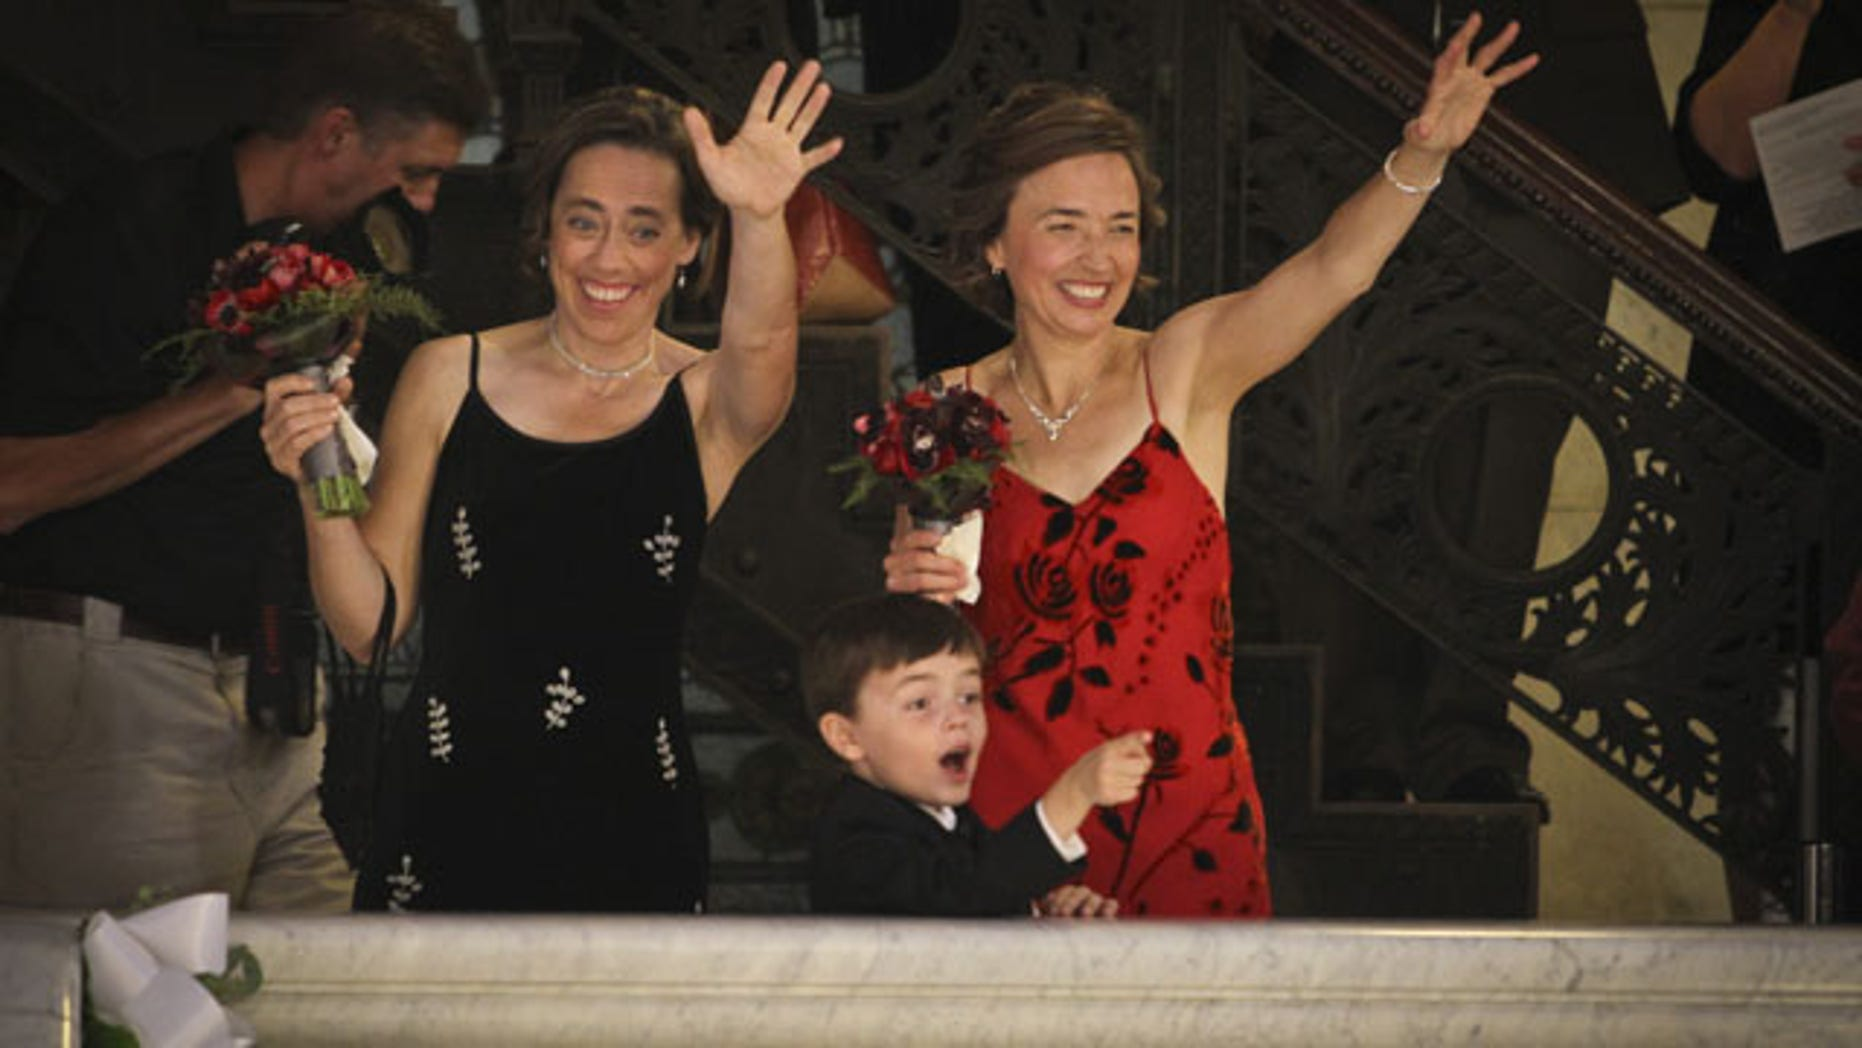 August 1, 2013: Margaret Miles, black dress, left, and Cathy ten Broeke, right, were the first same-sex couple to be married by Mayor R.T. Rybak at midnight at Minneapolis City Hall. Their son, Louie Miles ten Broeke, 5, center, was also present. (AP Photo)